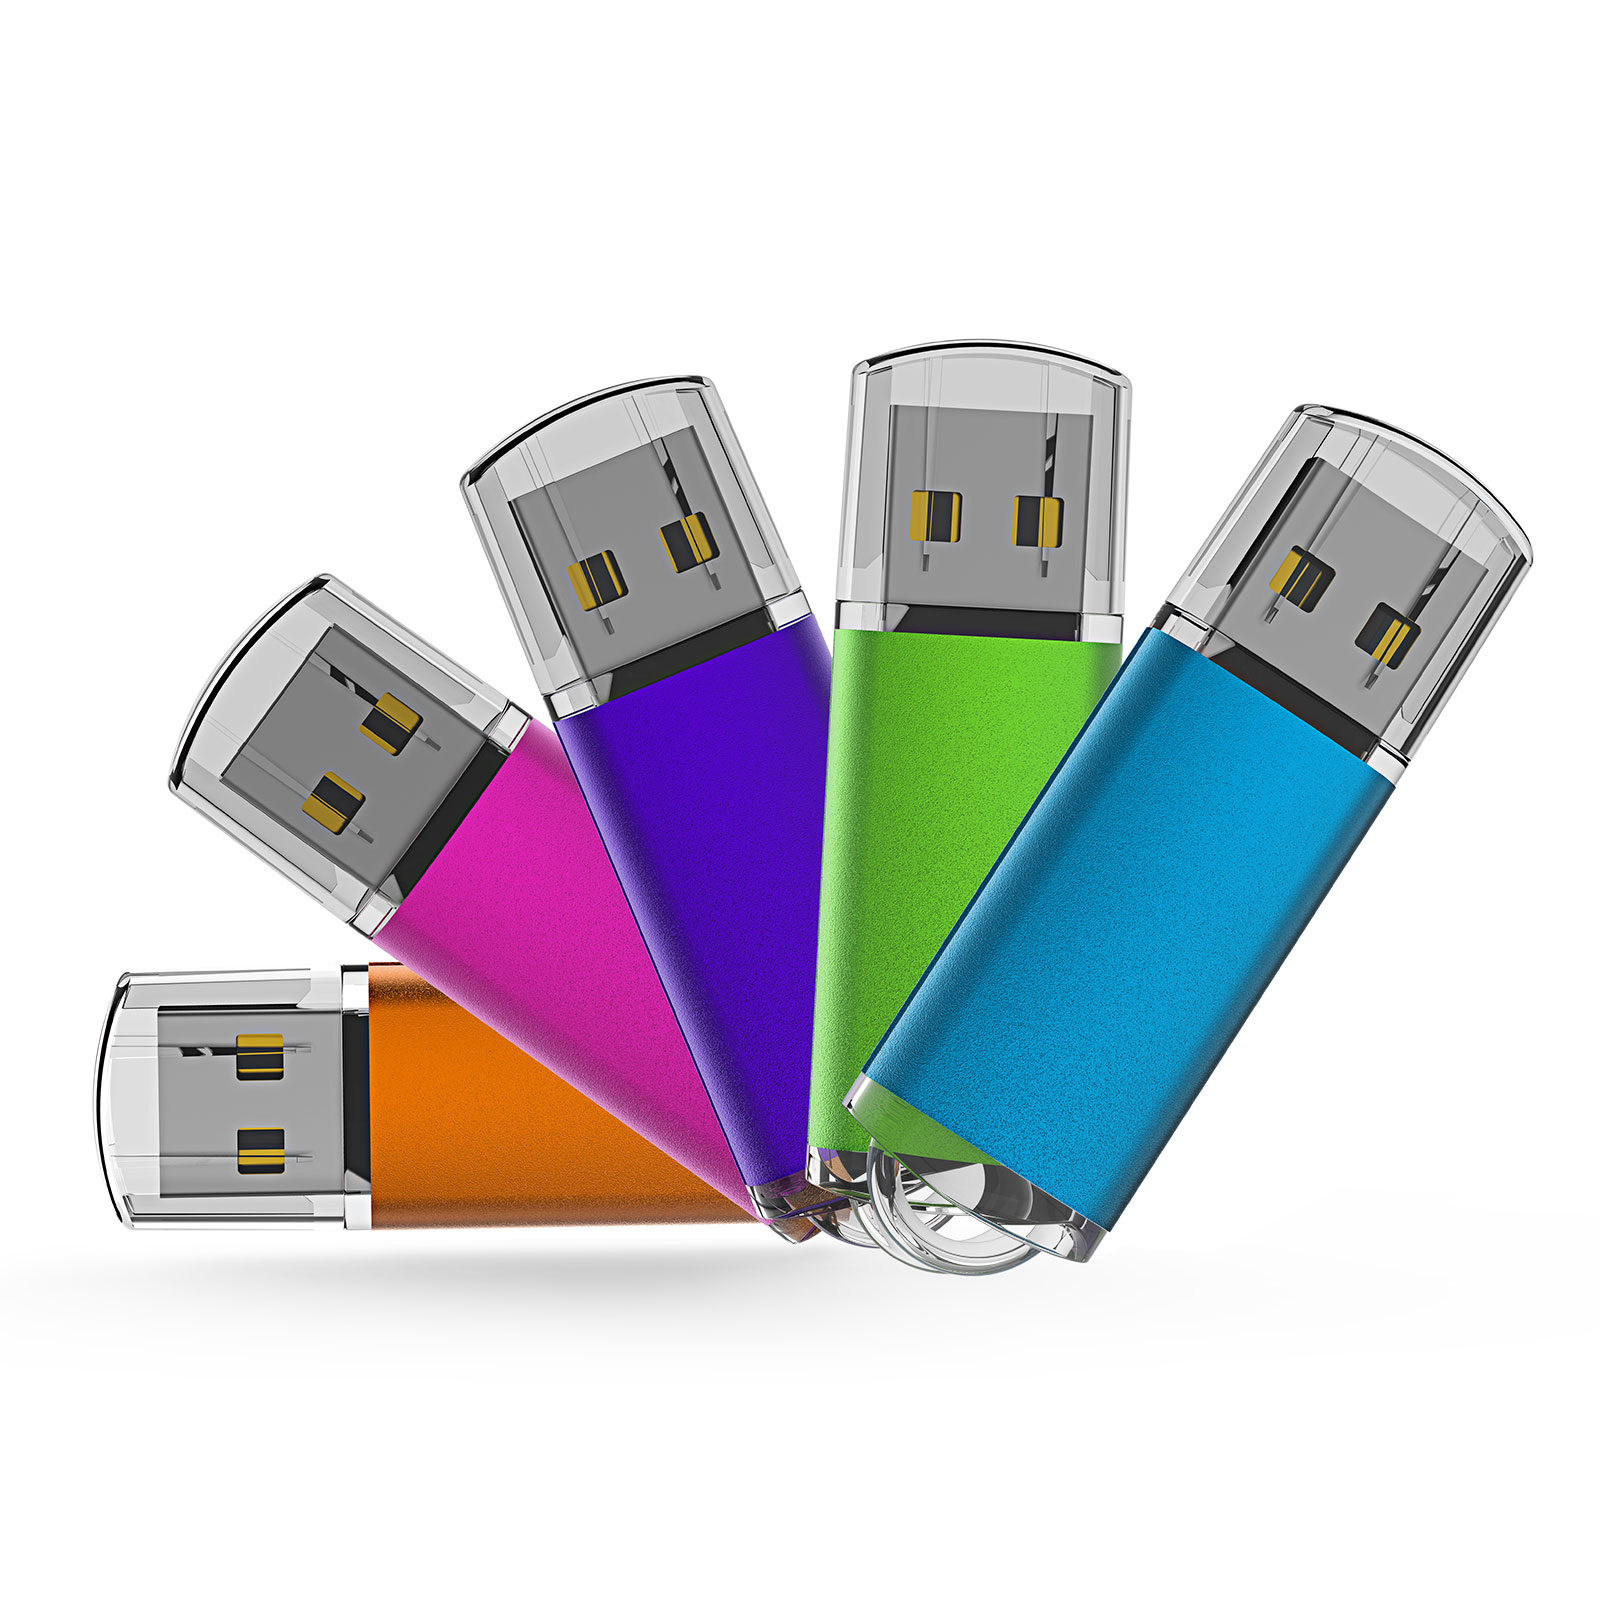 5 Pack 32GB USB 2.0 Flash Drive Memory Sticks StorageThumb Pen Drive Multicolor